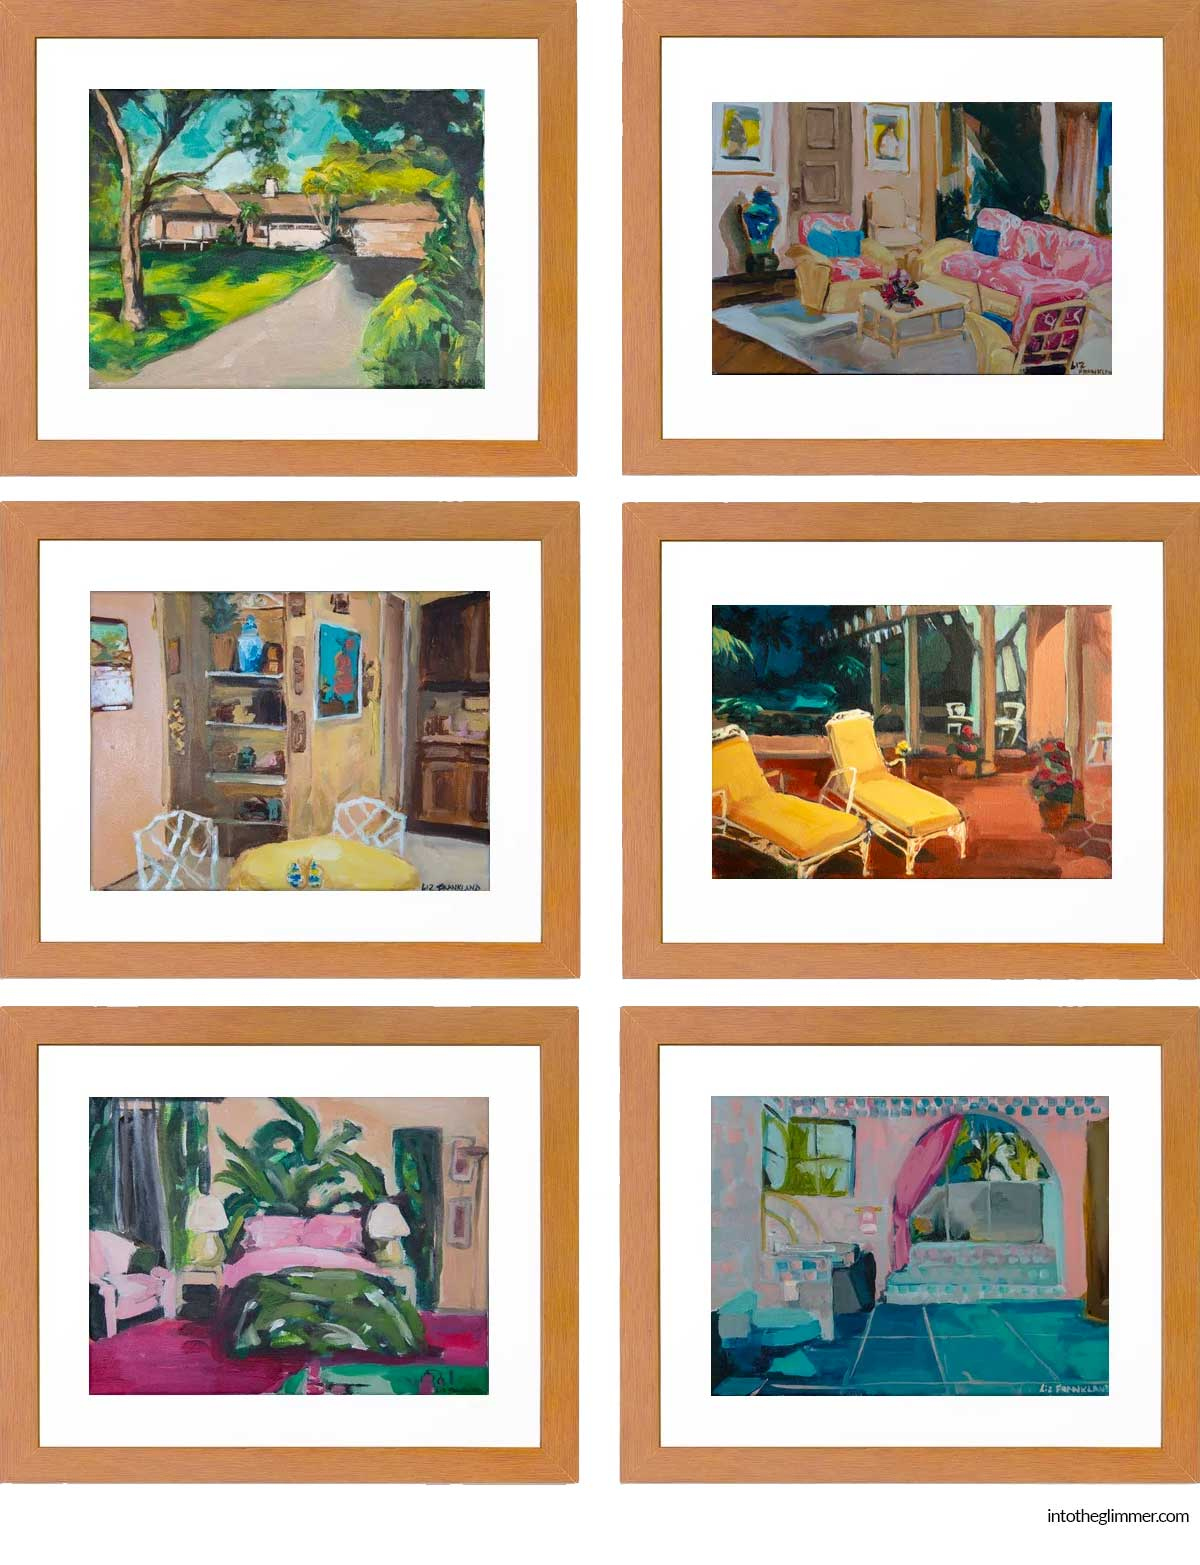 Shop:  Front of House  |  Living Room  |  Kitchen  |  Lannai  |  Blanche's Bedroom  |  Bathroom